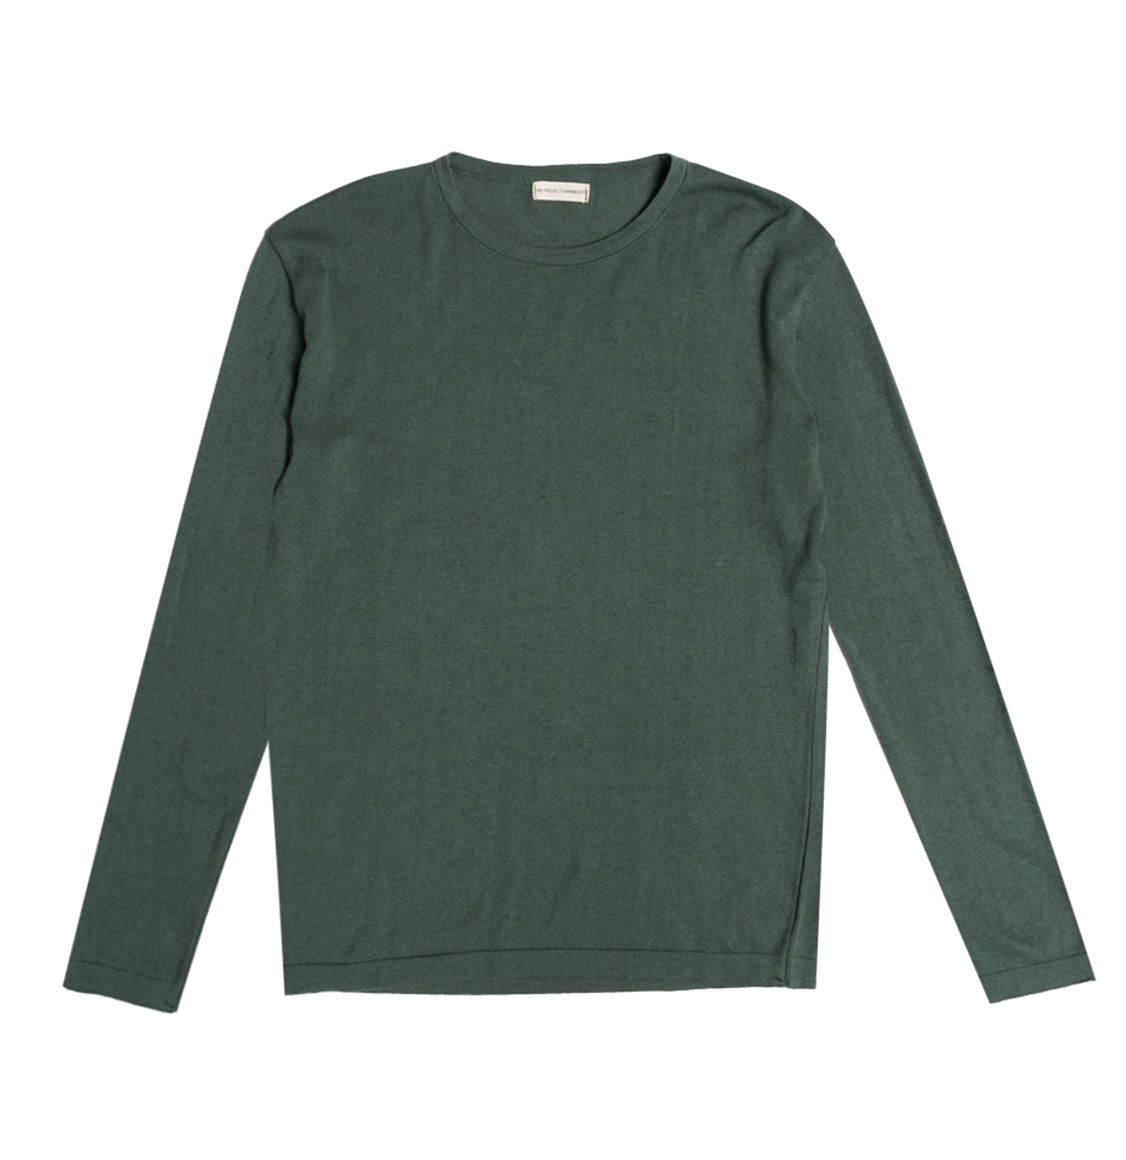 Cashmere Blend Crew Neck Knitted Sweater Forest Green